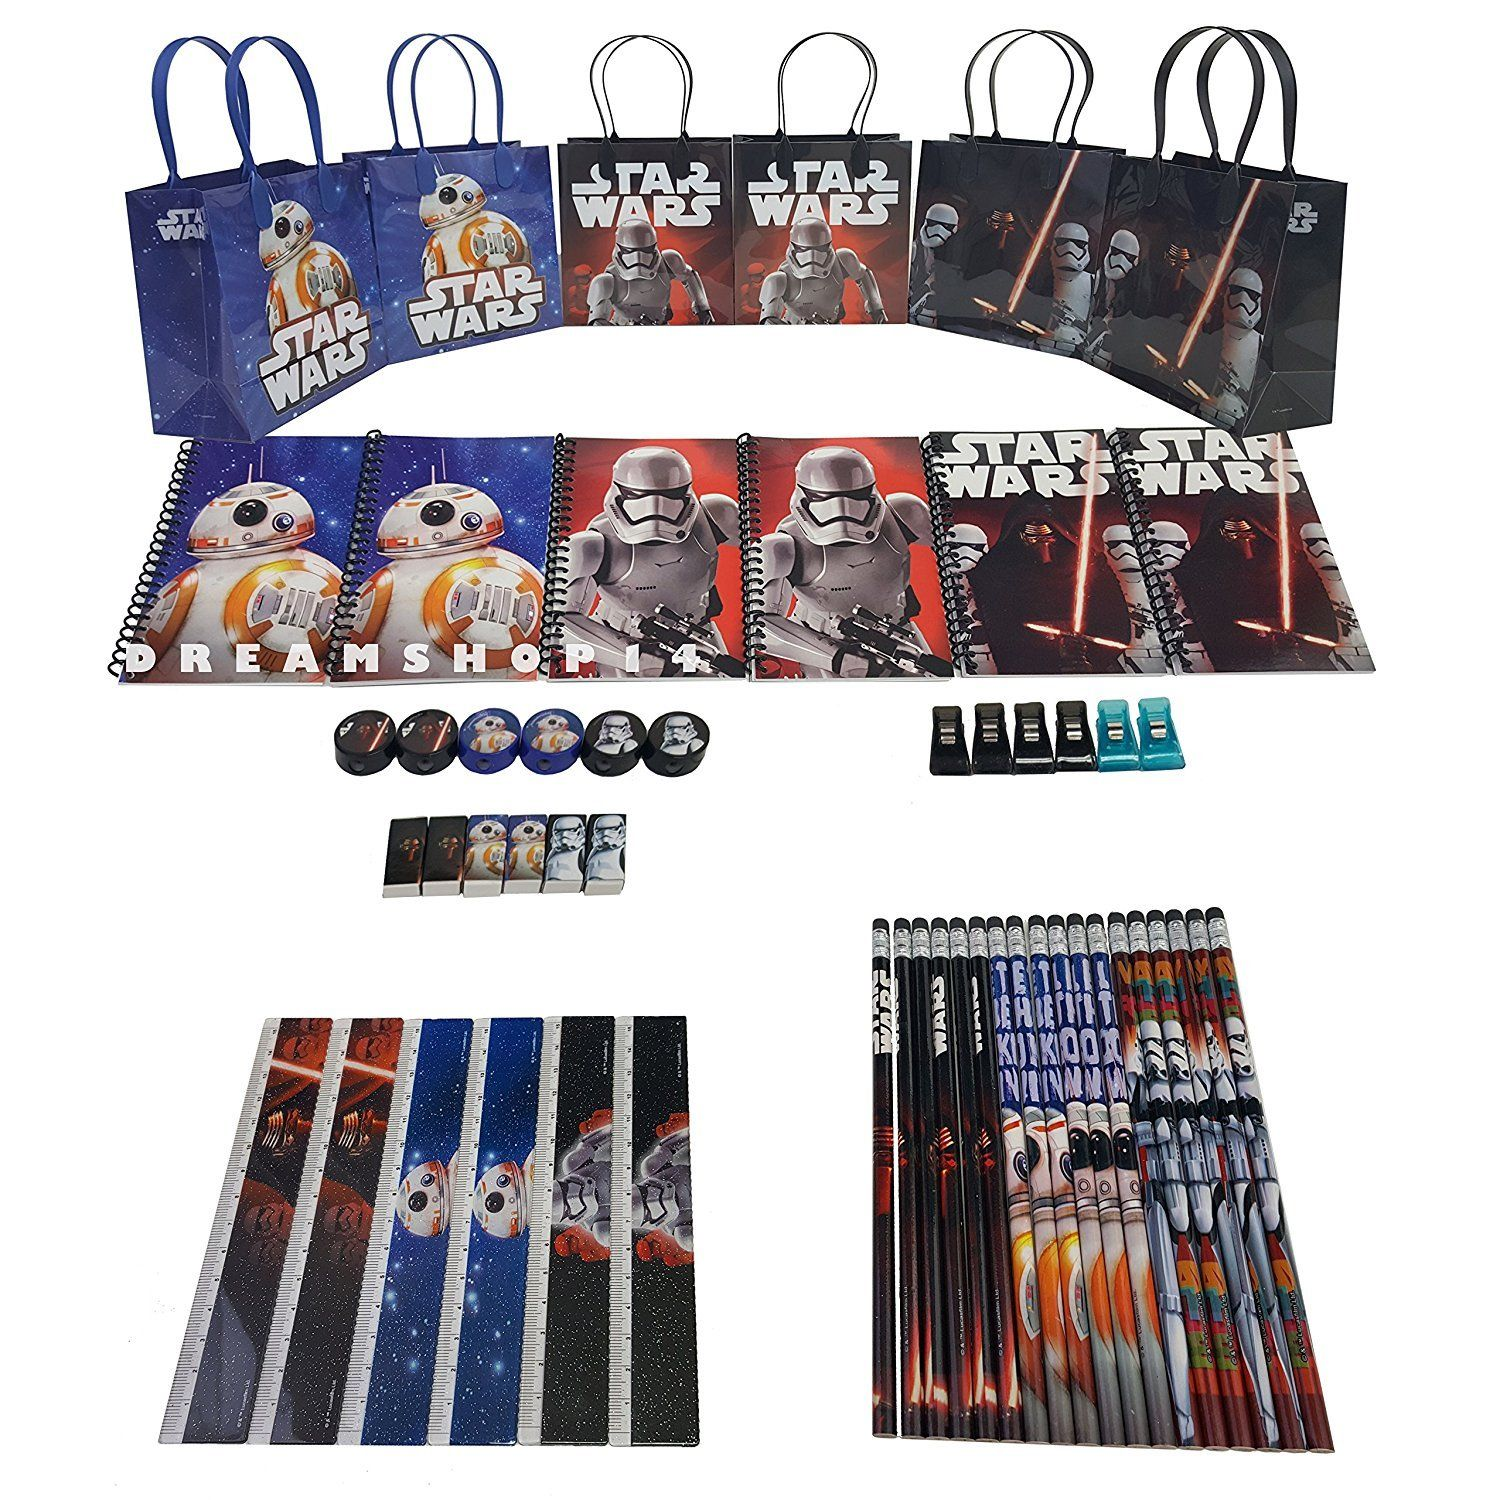 Party Favors Disney Star Wars Party Favor Stationery Set - 6 Pack (54 Pcs)